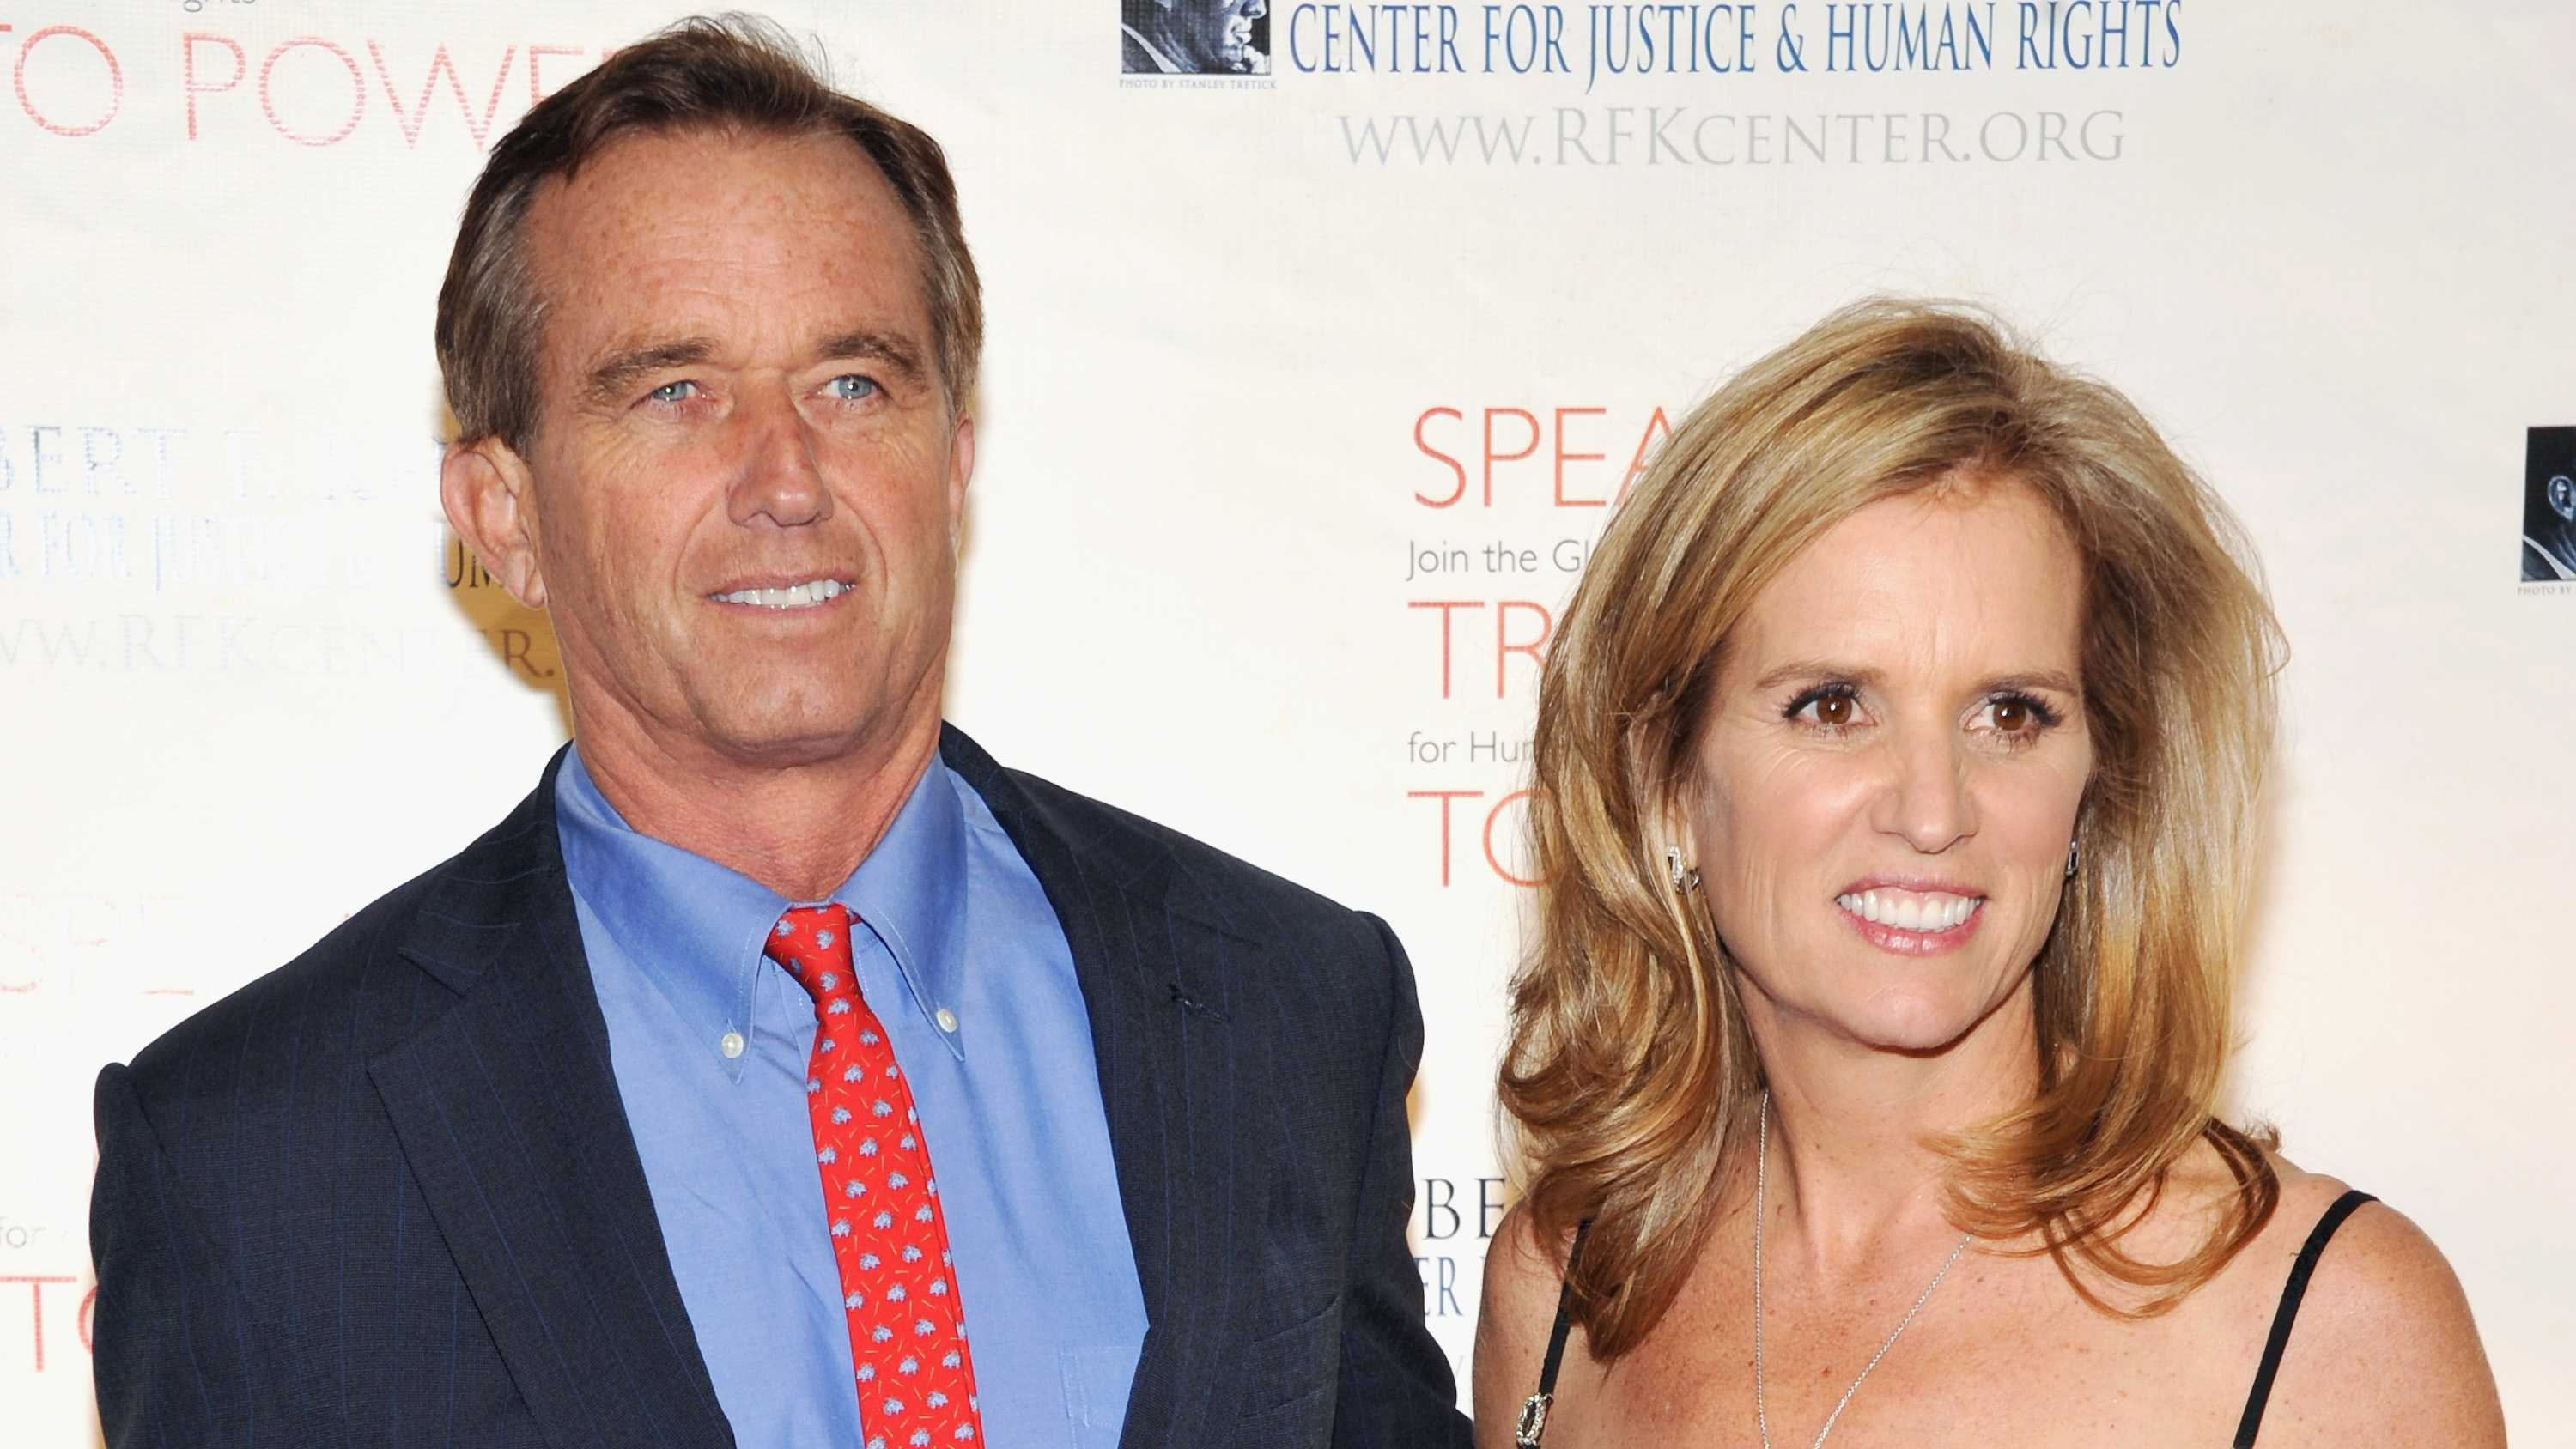 Kerry Kennedy seen here with her brother Robert F. Kennedy Jr.